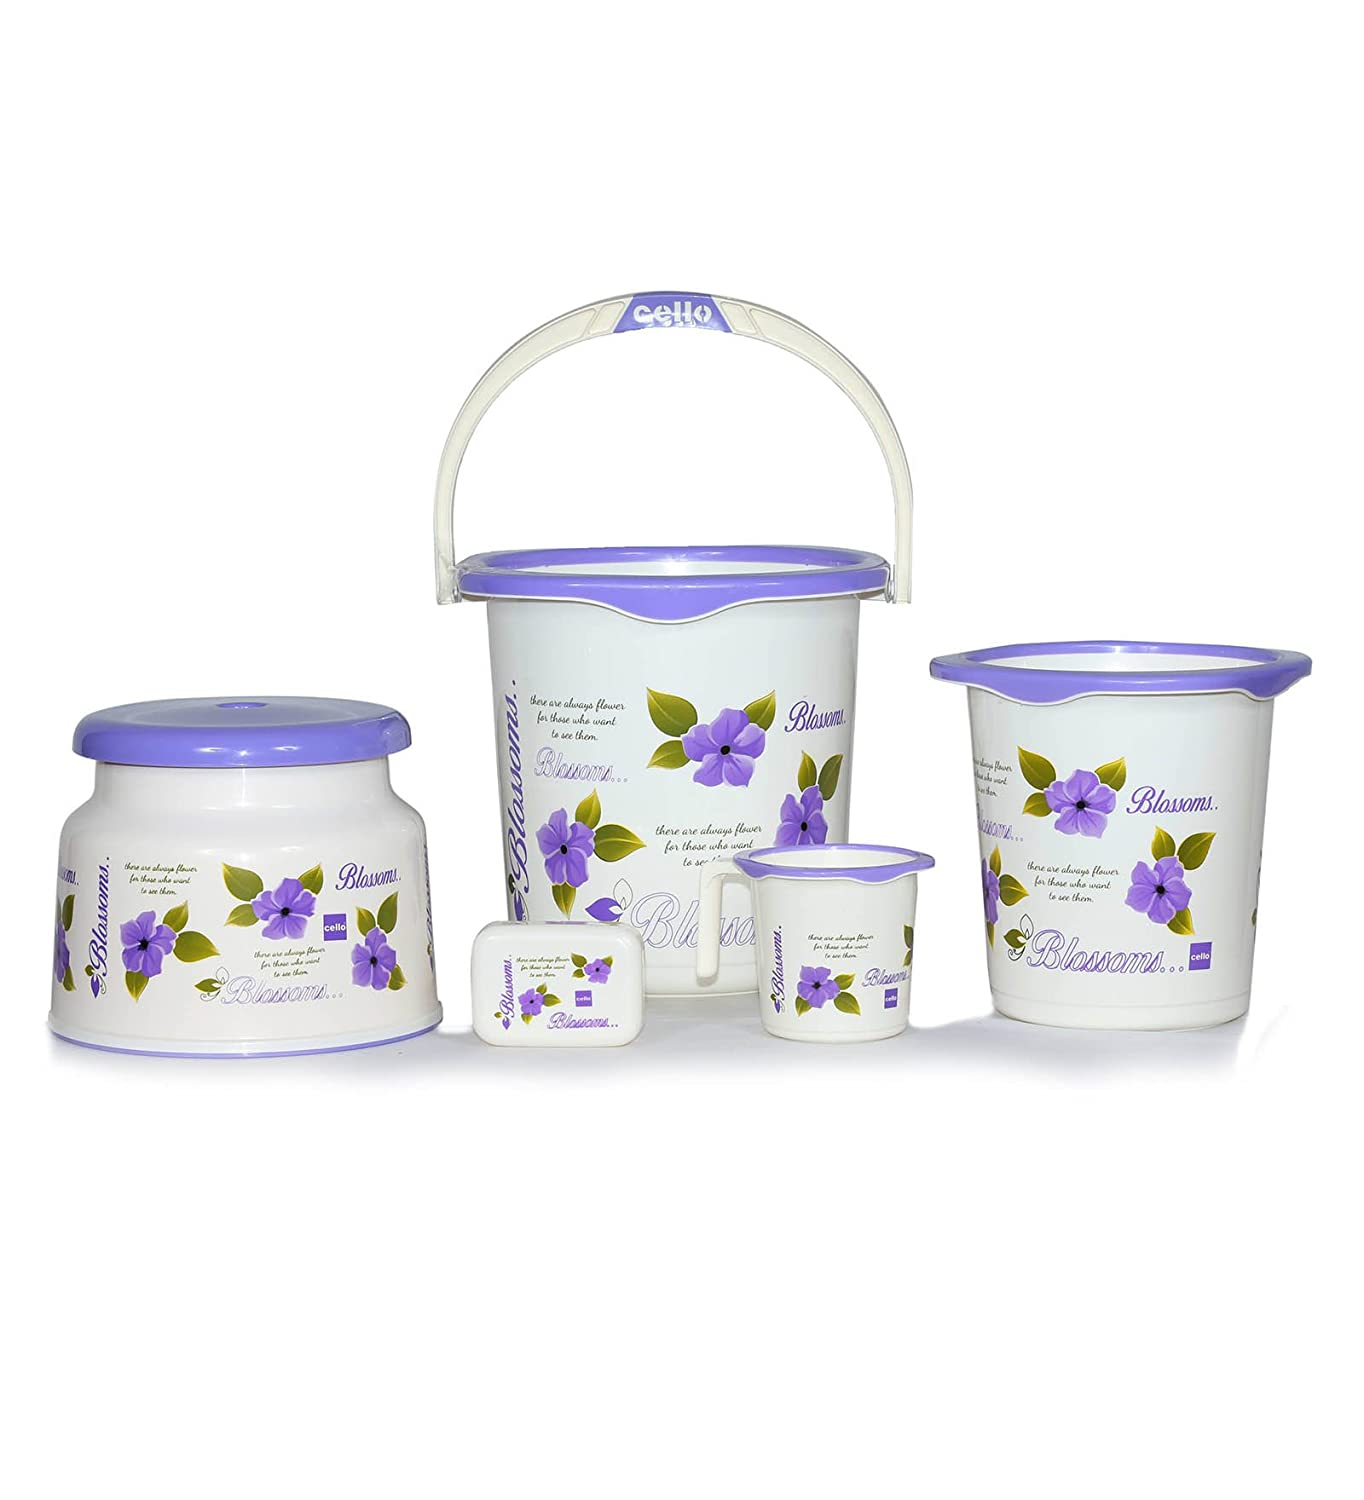 Cello Blossom 5 Piece Plastic Bath Set, Small, Purple